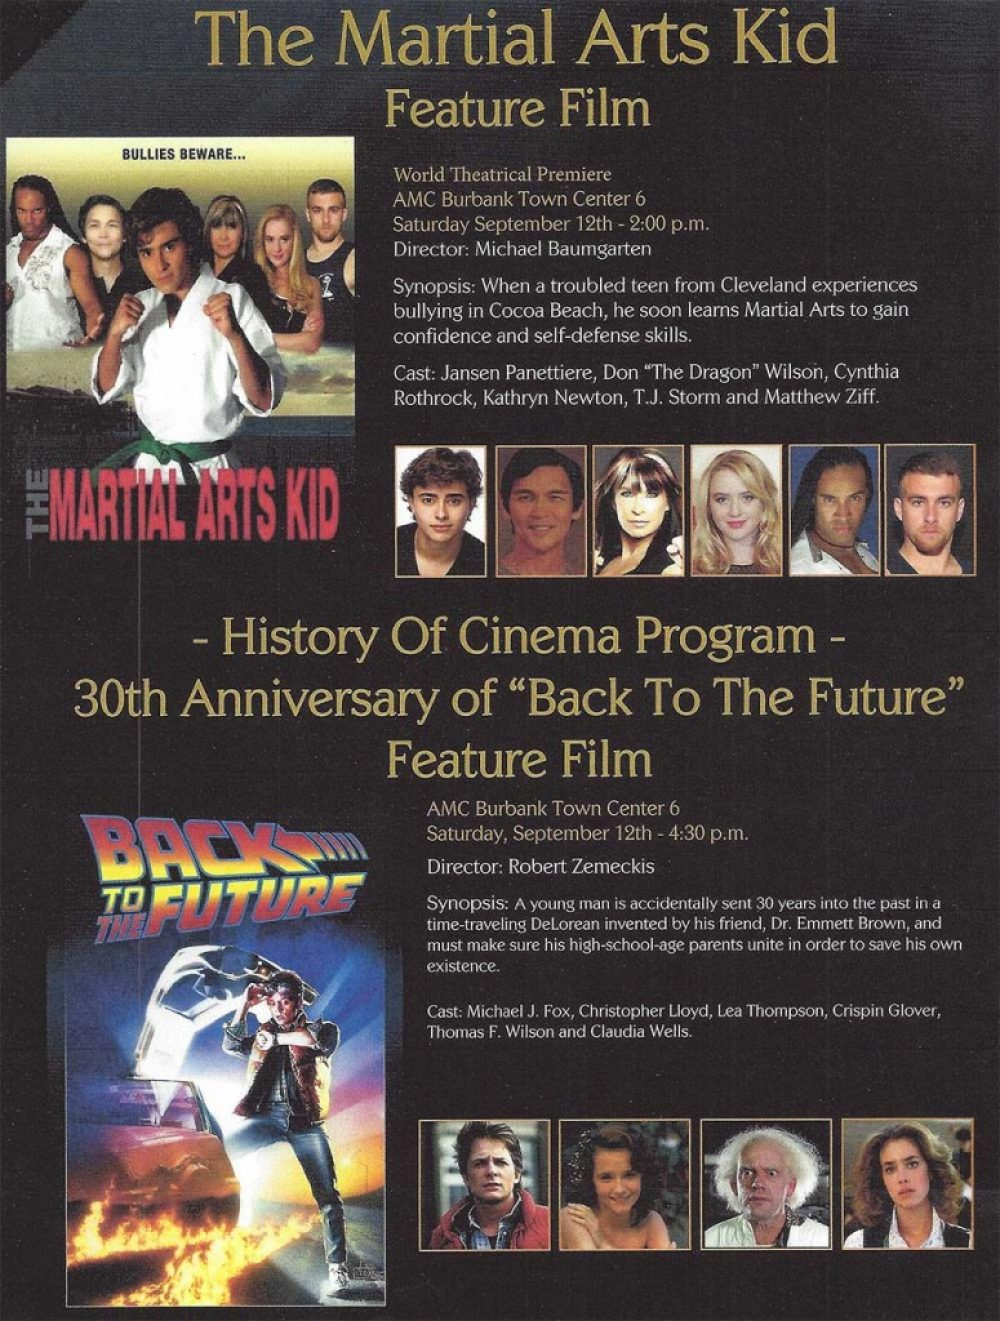 The Martial Arts Kid Movie Articles